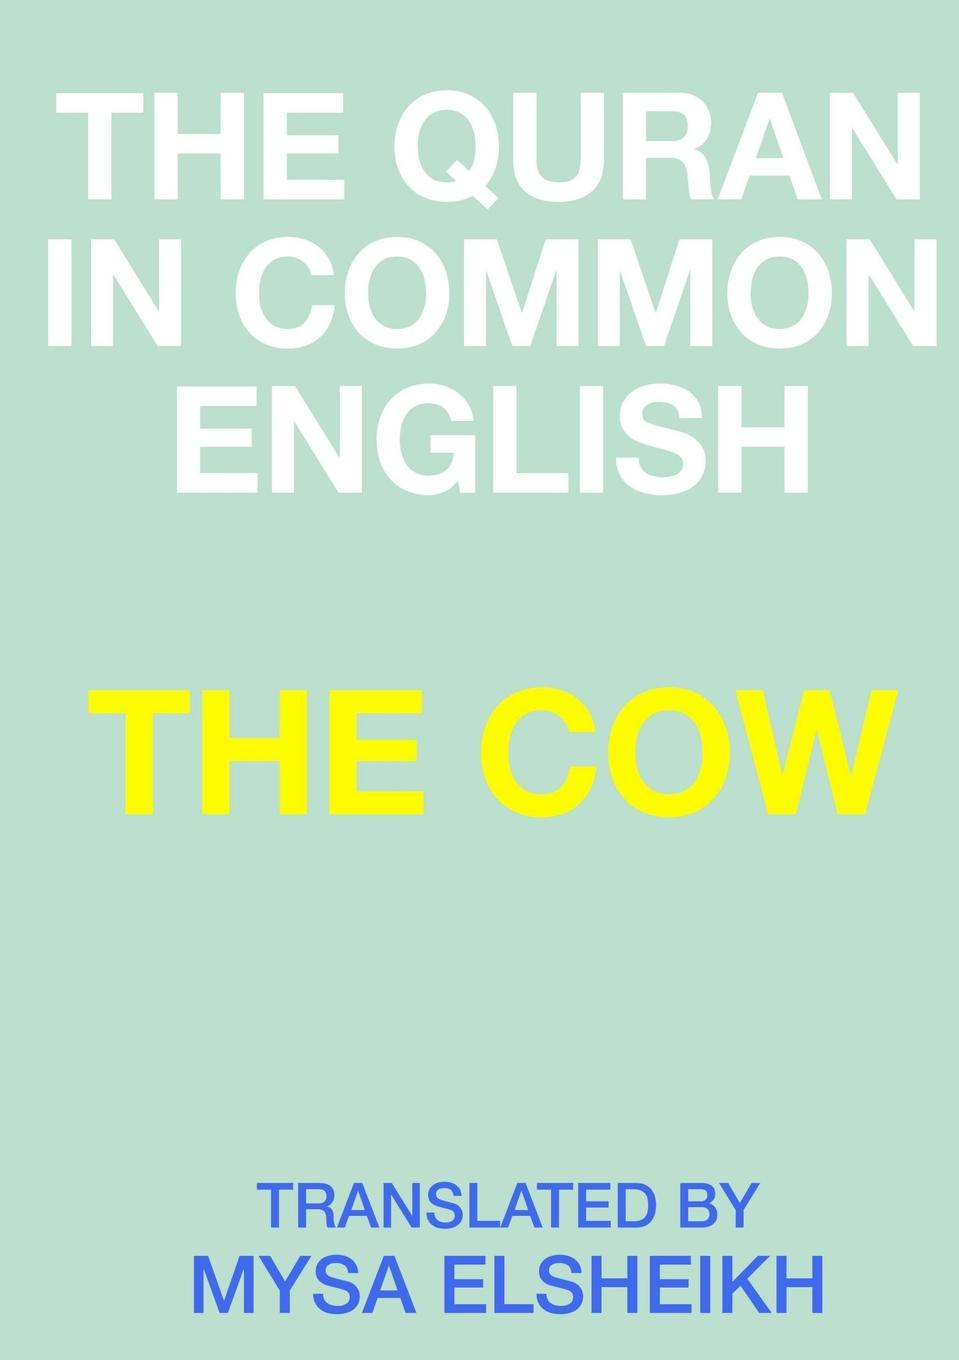 MYSA ELSHEIKH THE COW. THE QURAN IN COMMON ENGLISH this is common in english bluetooth oximeter nail type oxygen meter